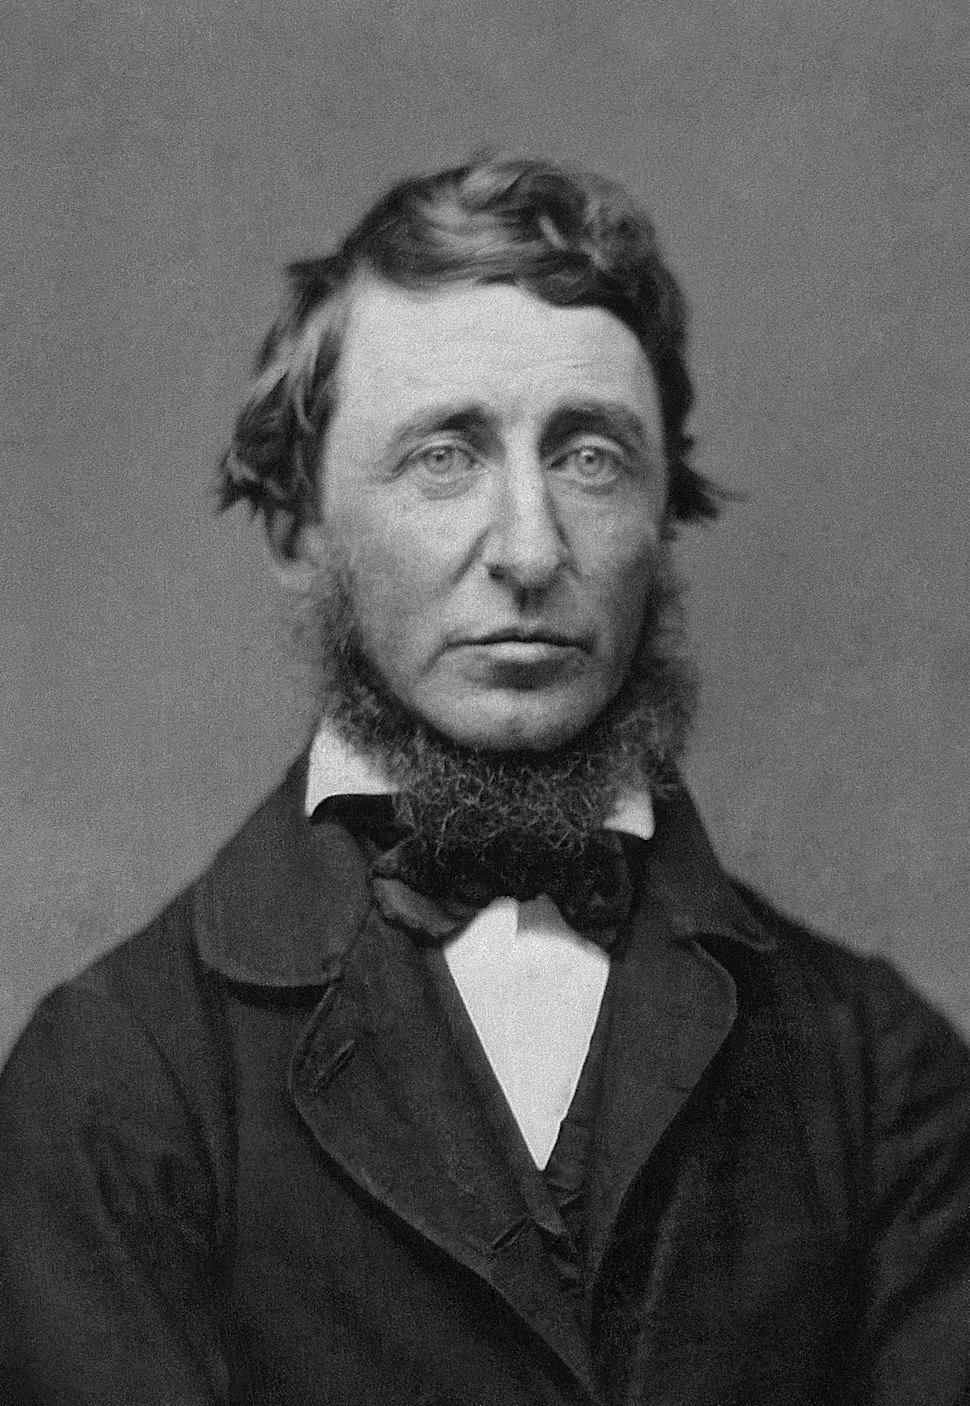 Benjamin D. Maxham - Henry David Thoreau - Restored - greyscale - straightened